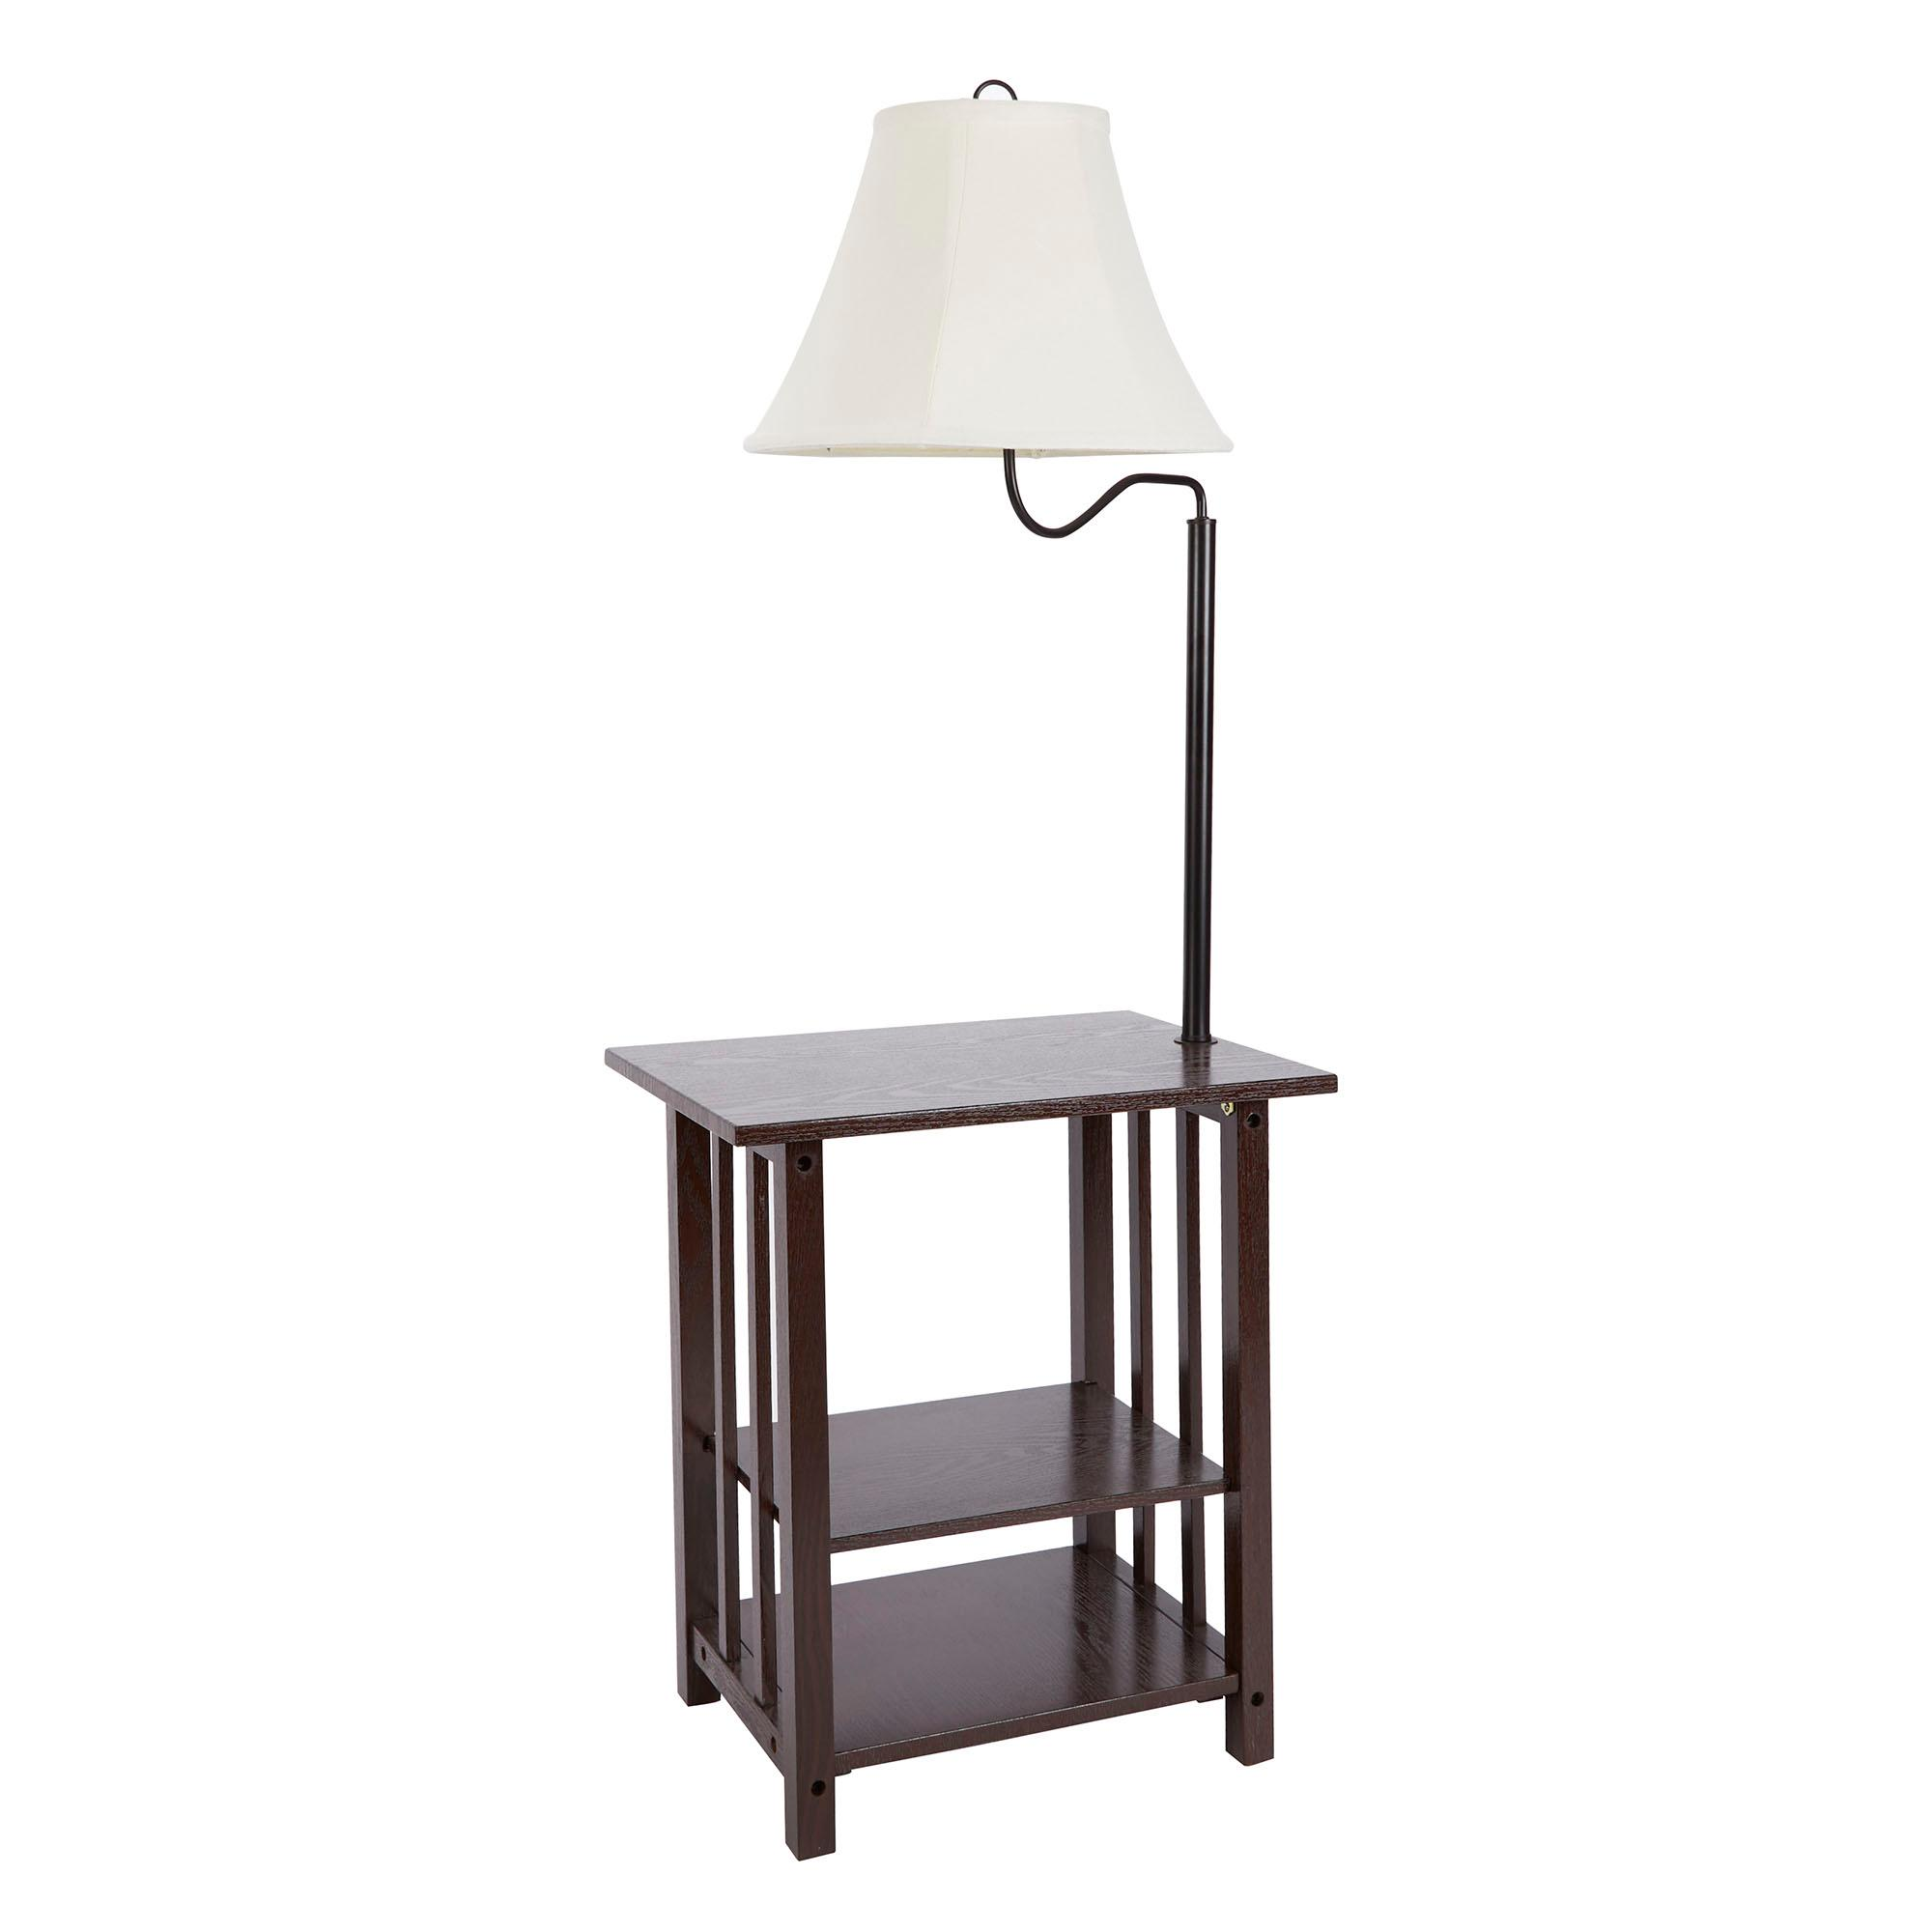 10 reasons to buy end tables with lamps attached warisan lighting if you will utilize your lamp just for general lighting you have more space with your decisions end tables with lamps attached aloadofball Image collections